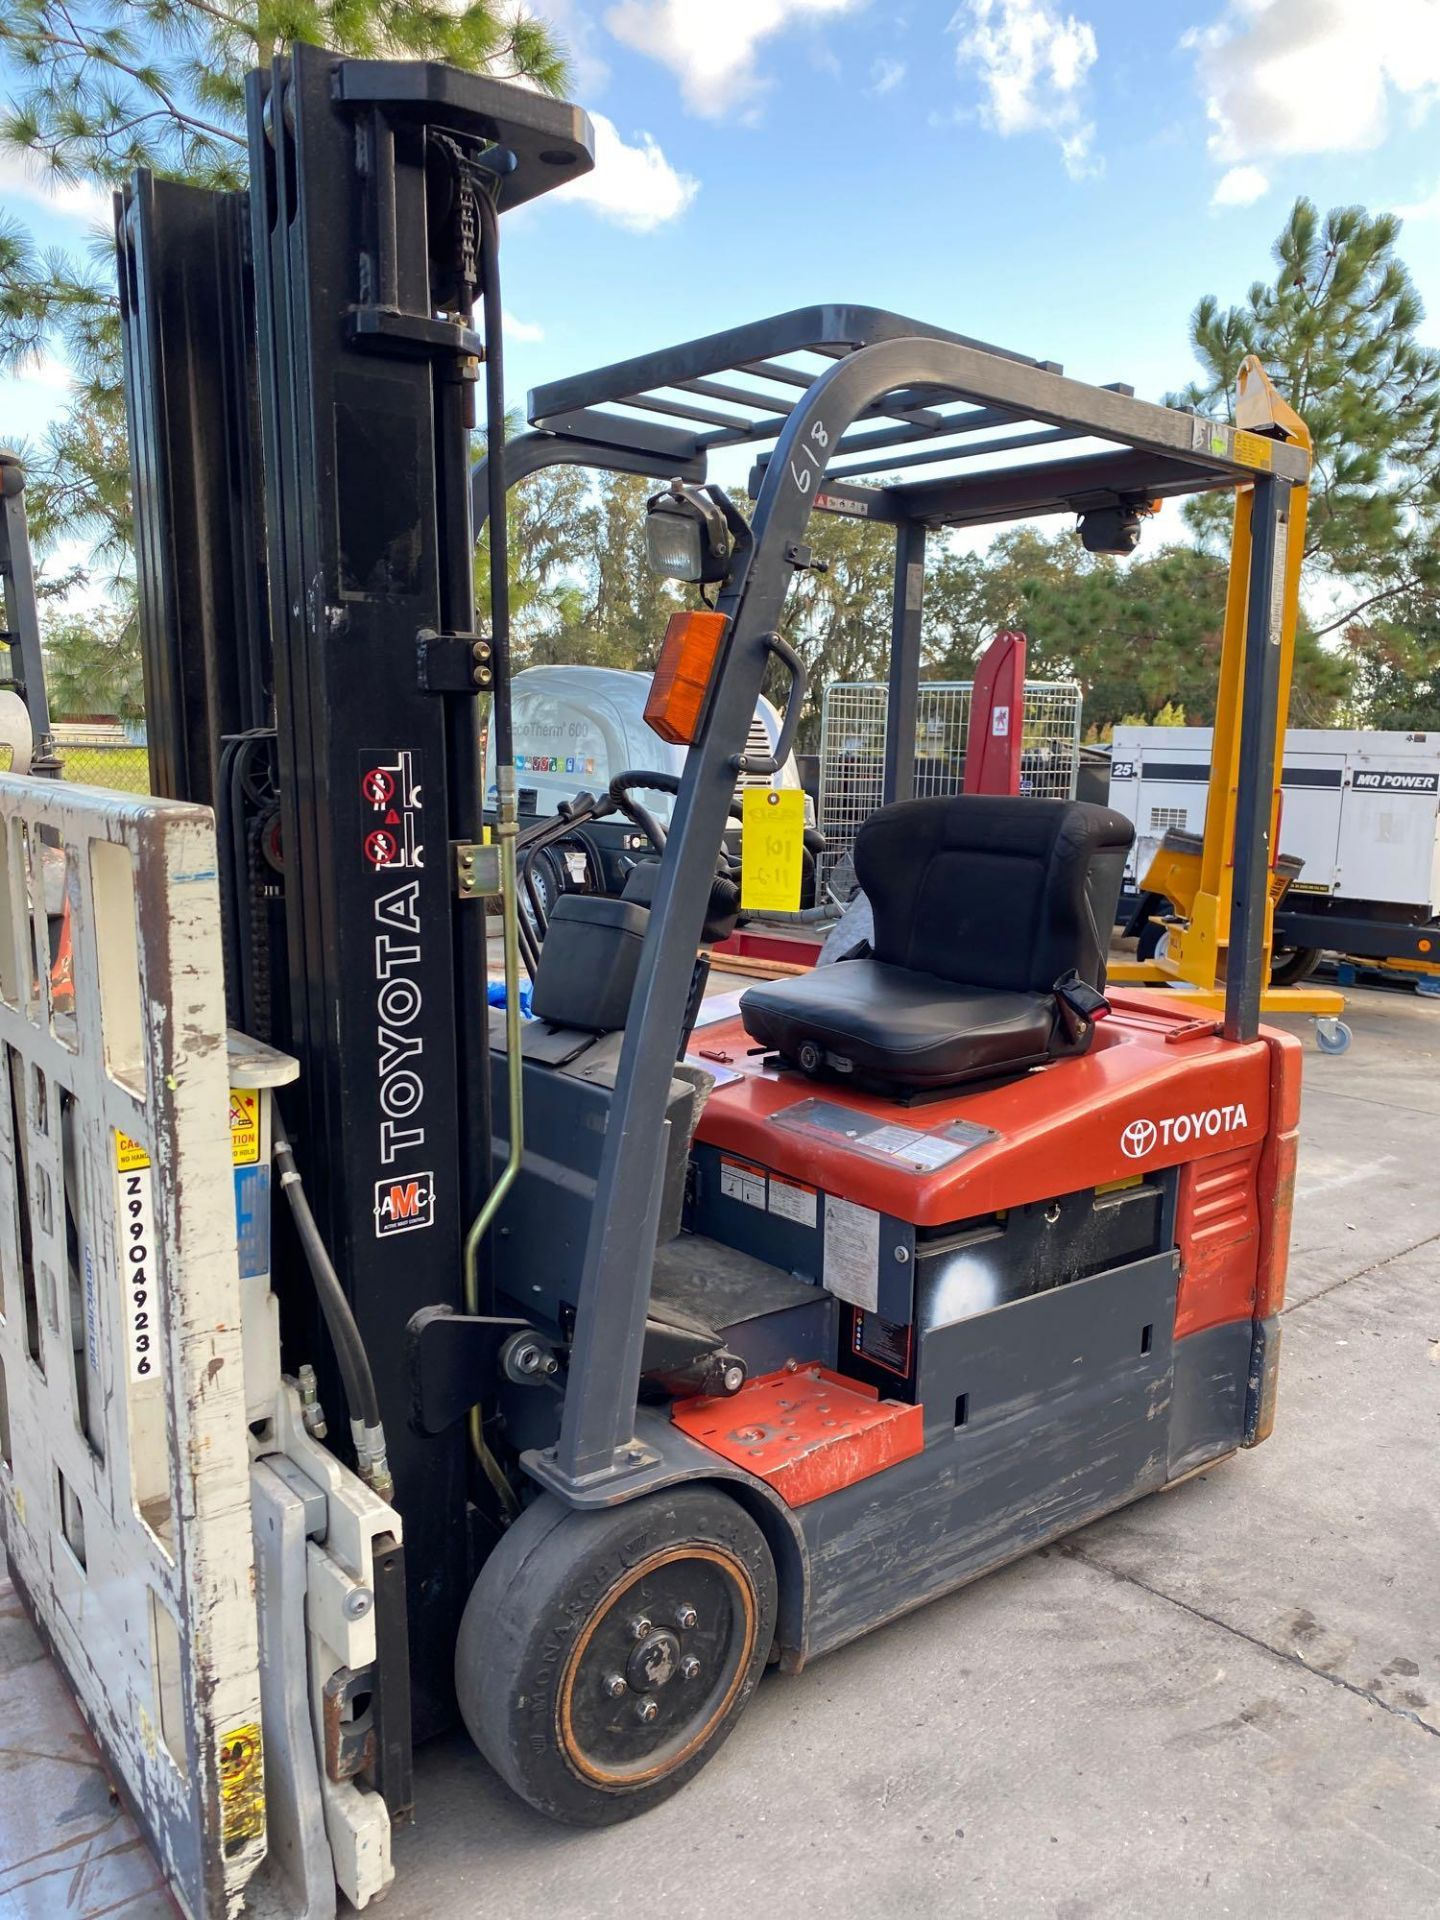 TOYOTA ELECTRIC FORKLIFT MODEL 7FBEU20, 4,000 LB CAPACITY, CASCADE PUSH/PULL ATTACHMENT, TILT, SIDE - Image 5 of 24